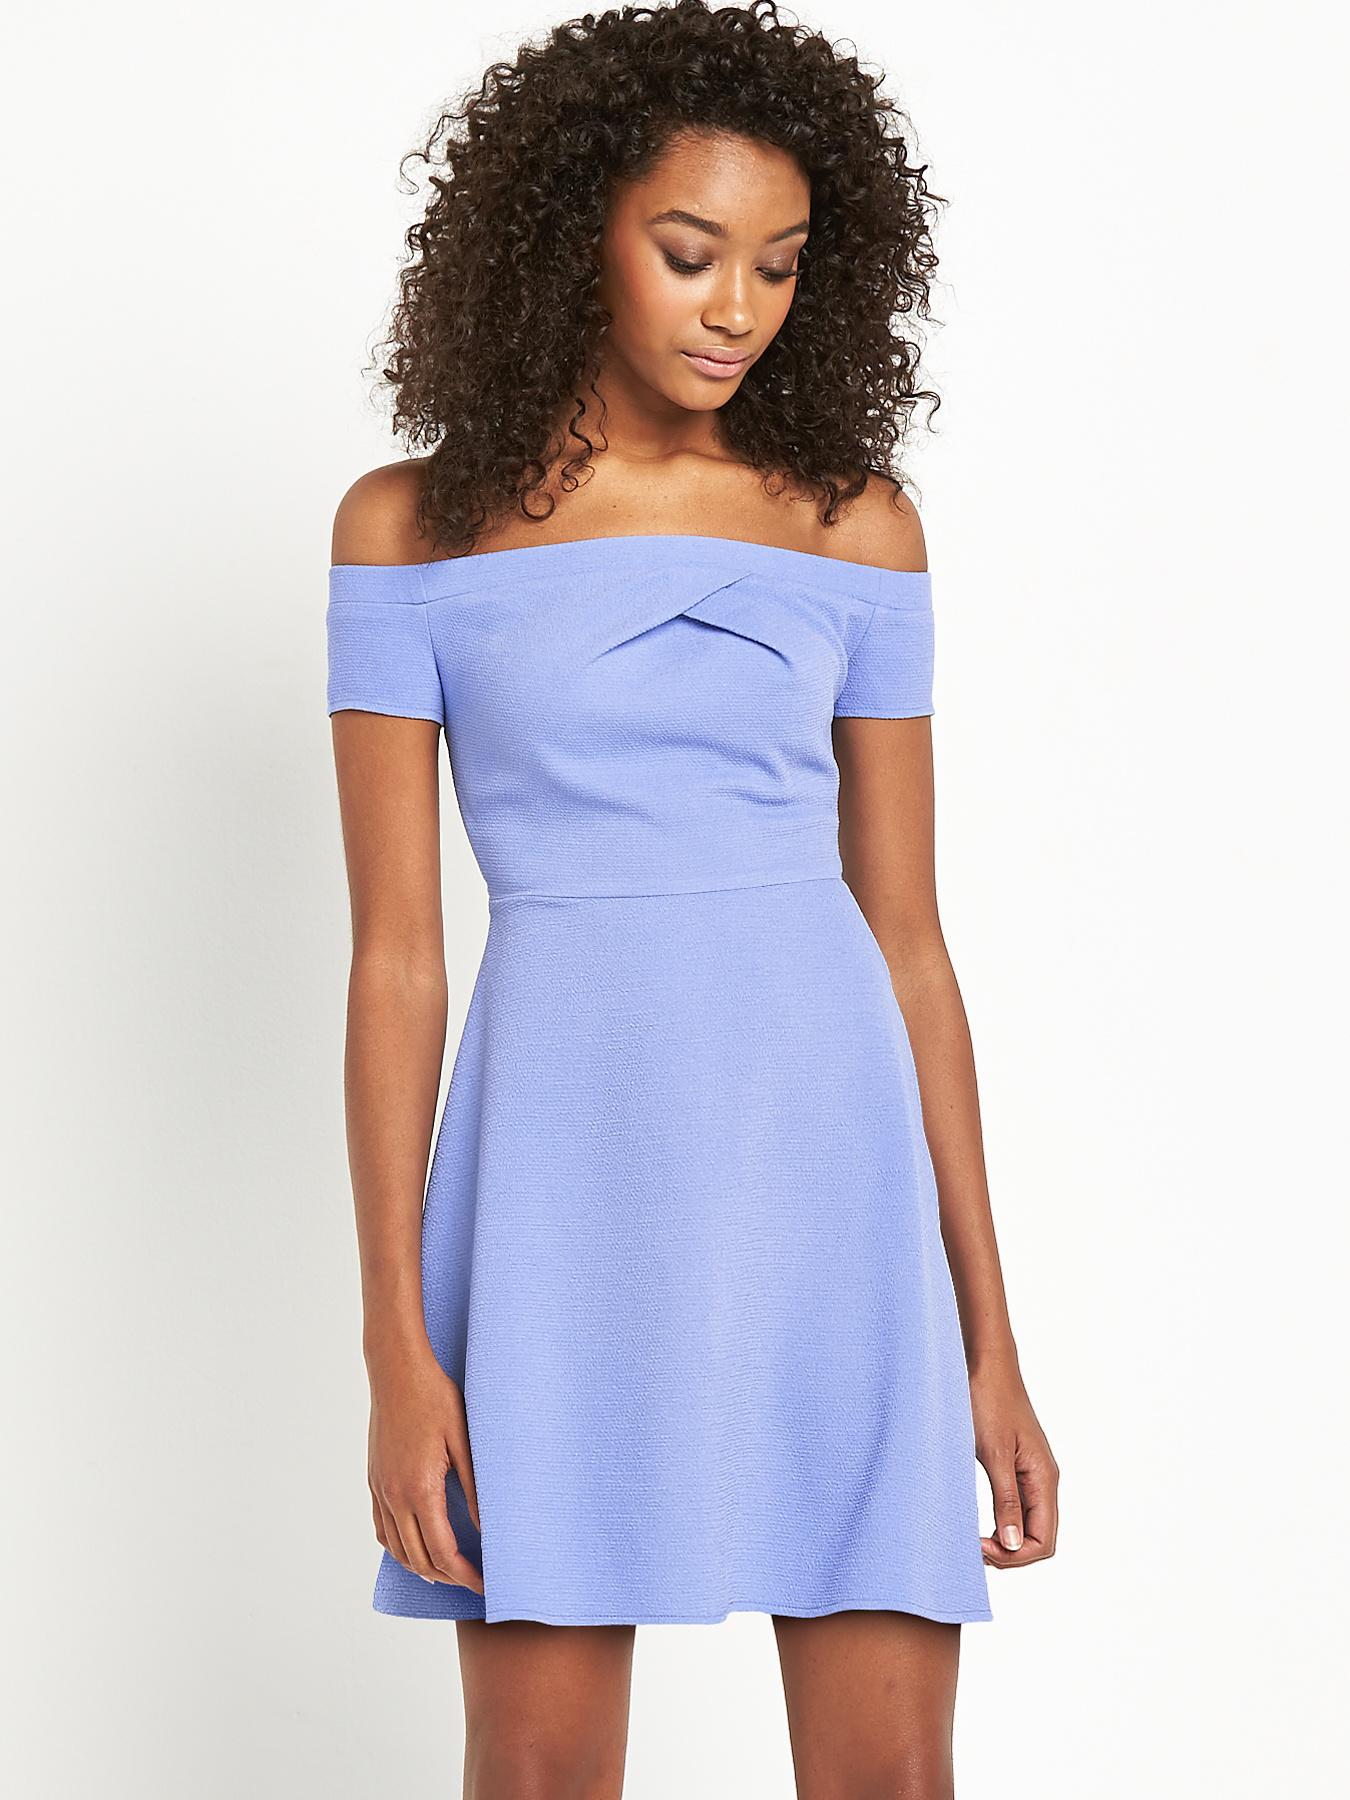 Definitions Bardot Crepe Dress